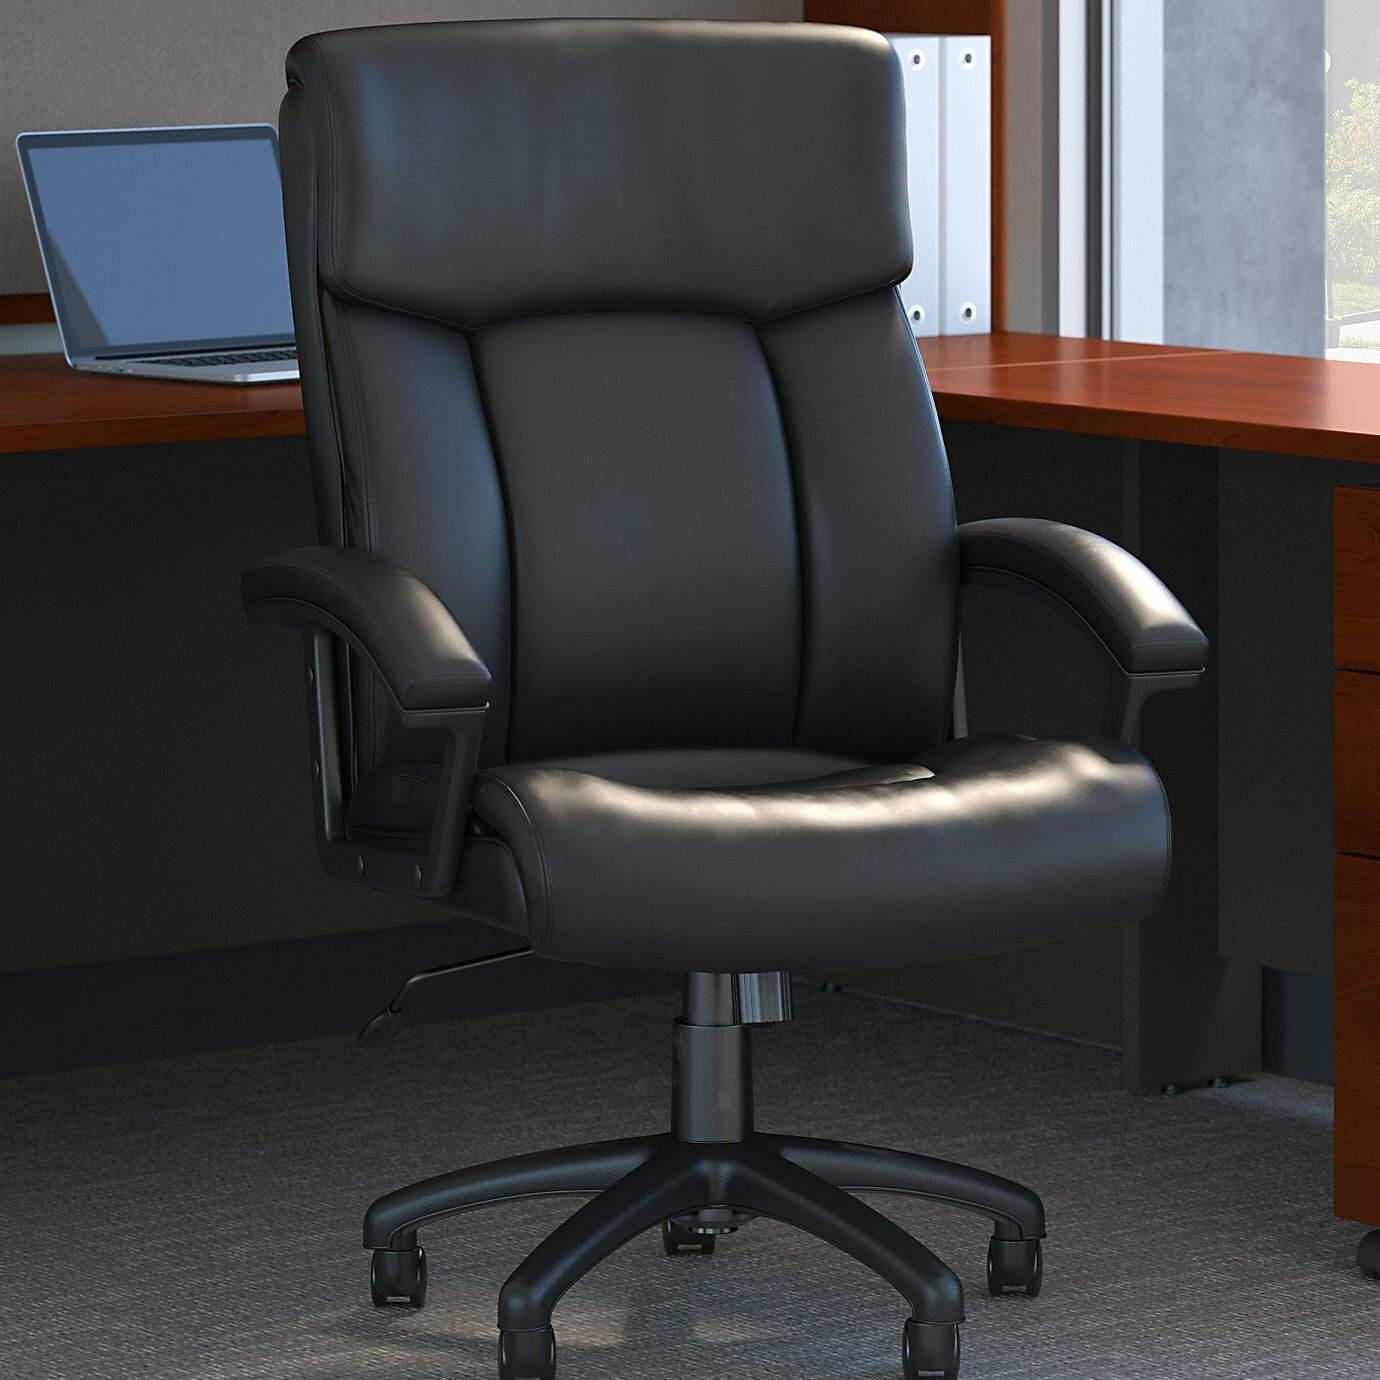 Awe Inspiring Stanton Plus High Back Executive Chair Download Free Architecture Designs Sospemadebymaigaardcom